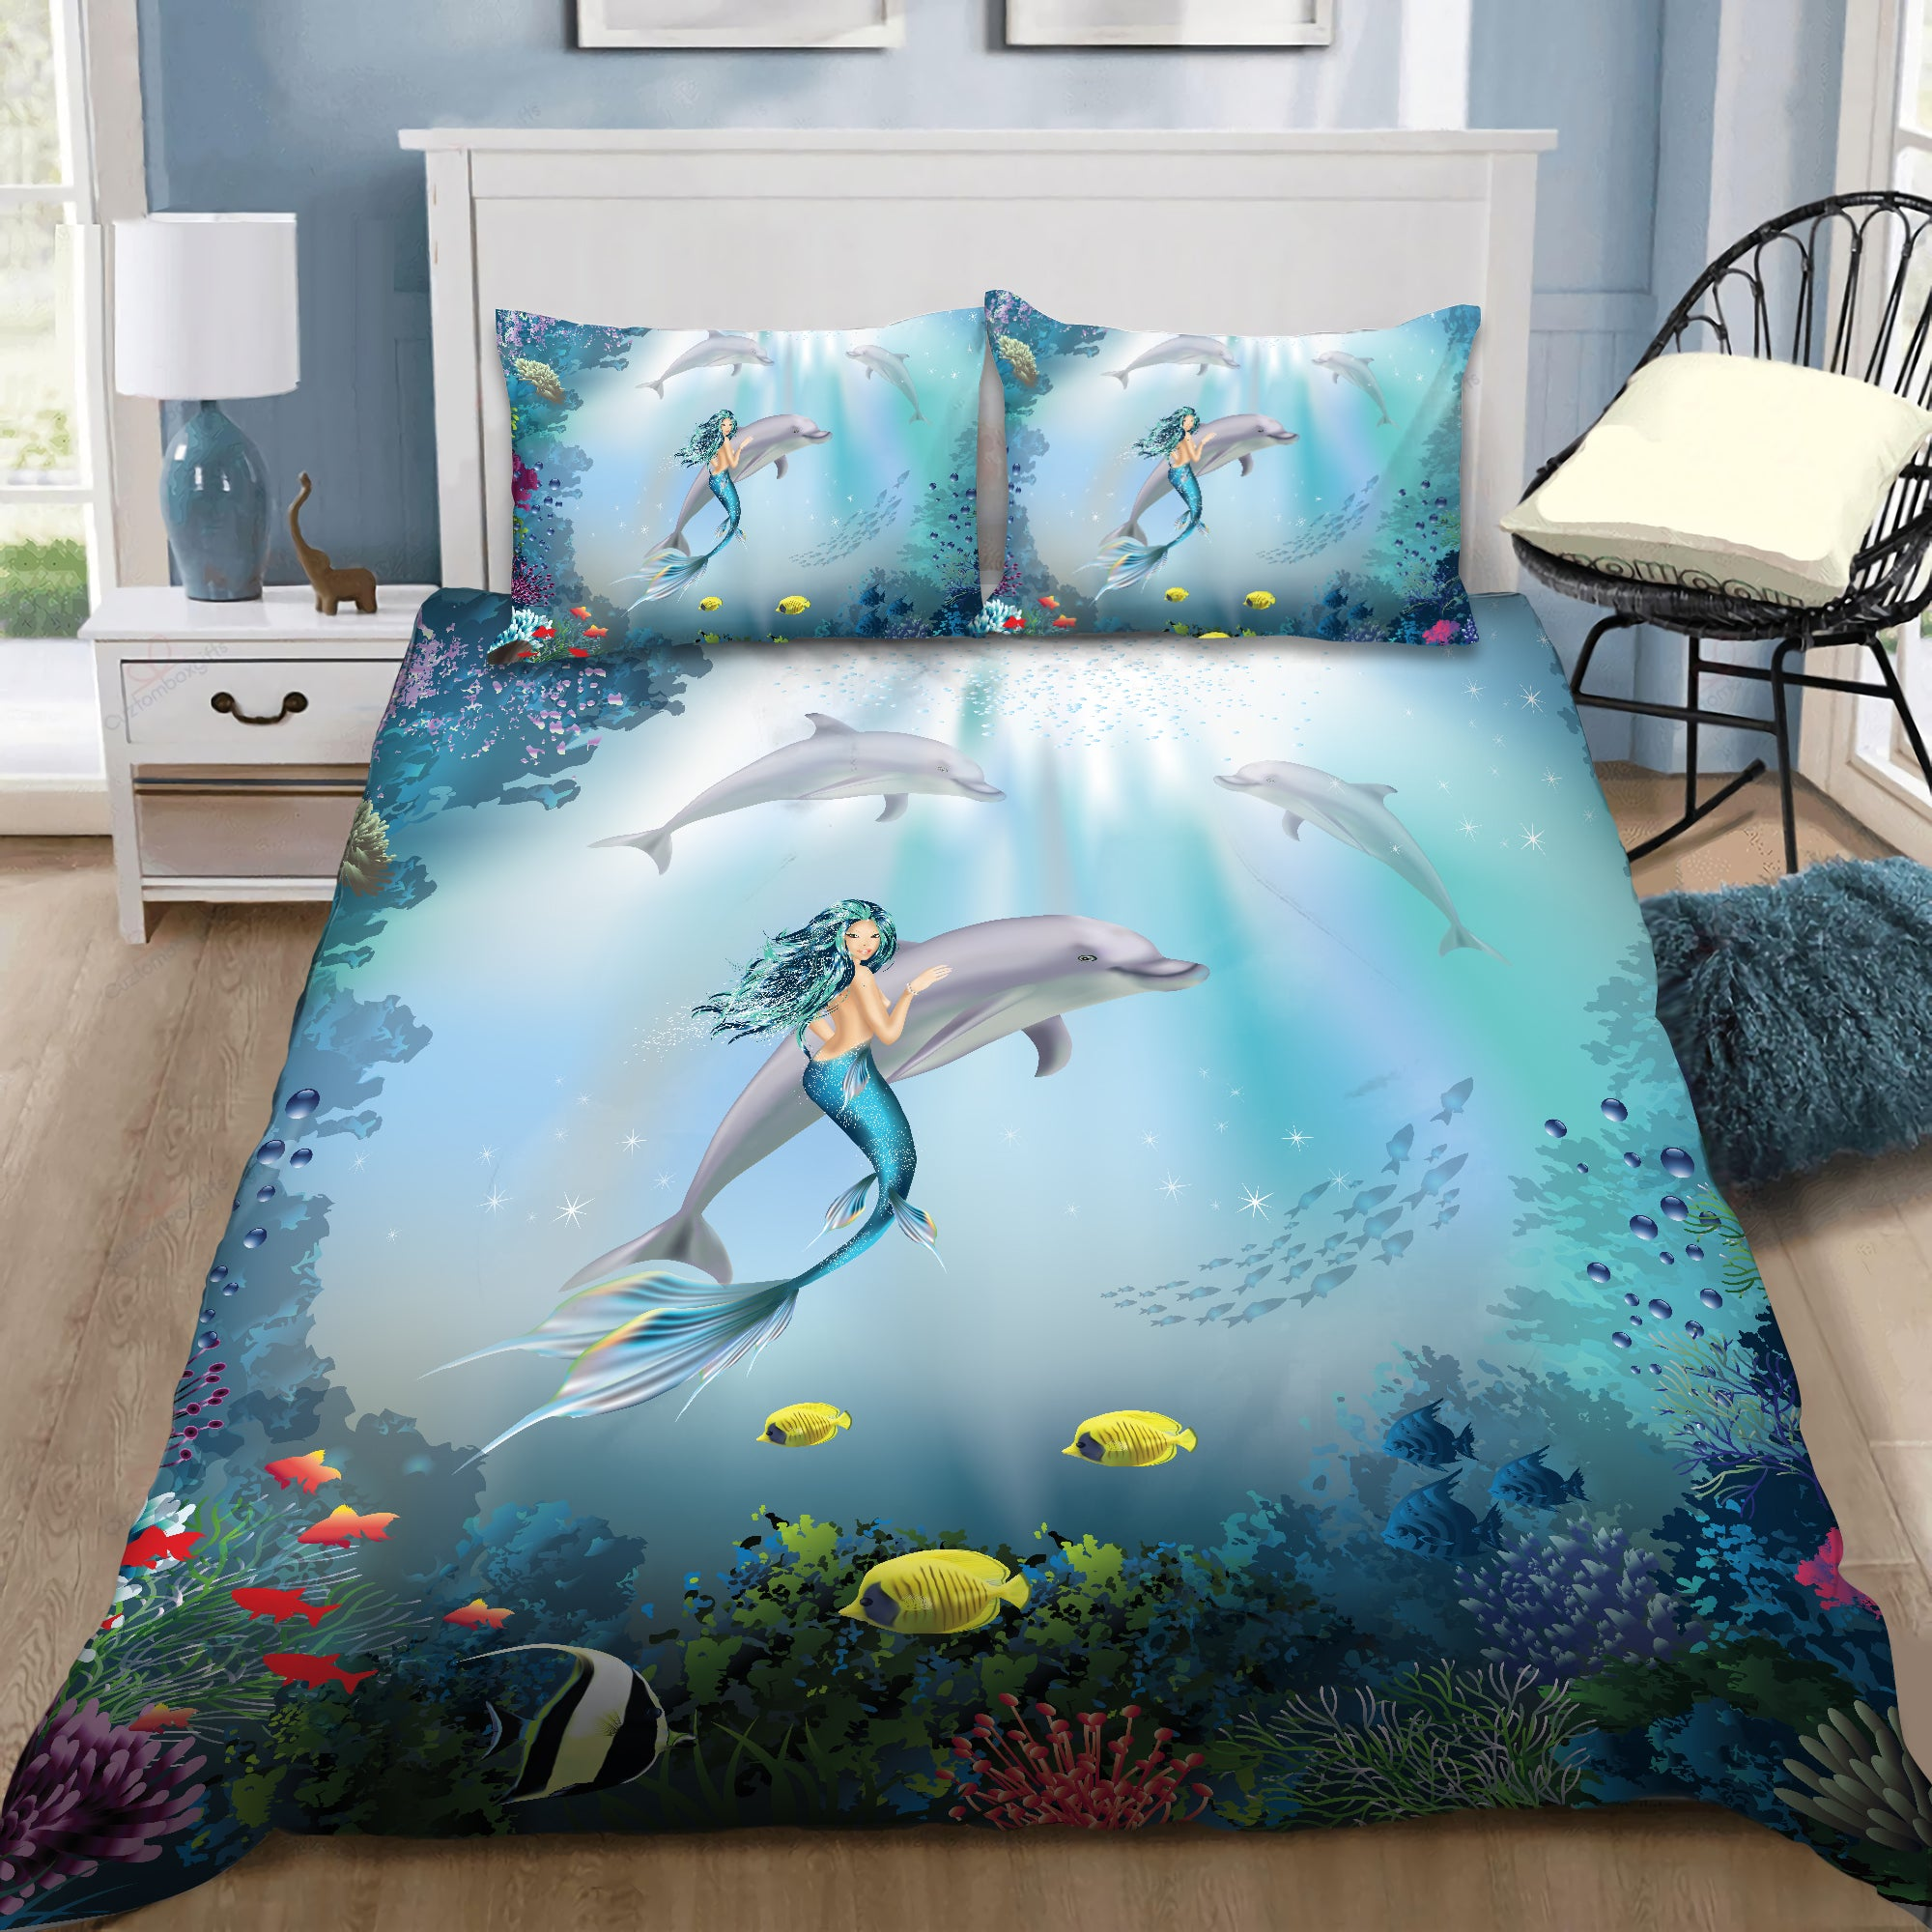 Be A Mermaid And Make Waves Bedding Set by SUN DQB07132002 - Amaze Style™-Quilt